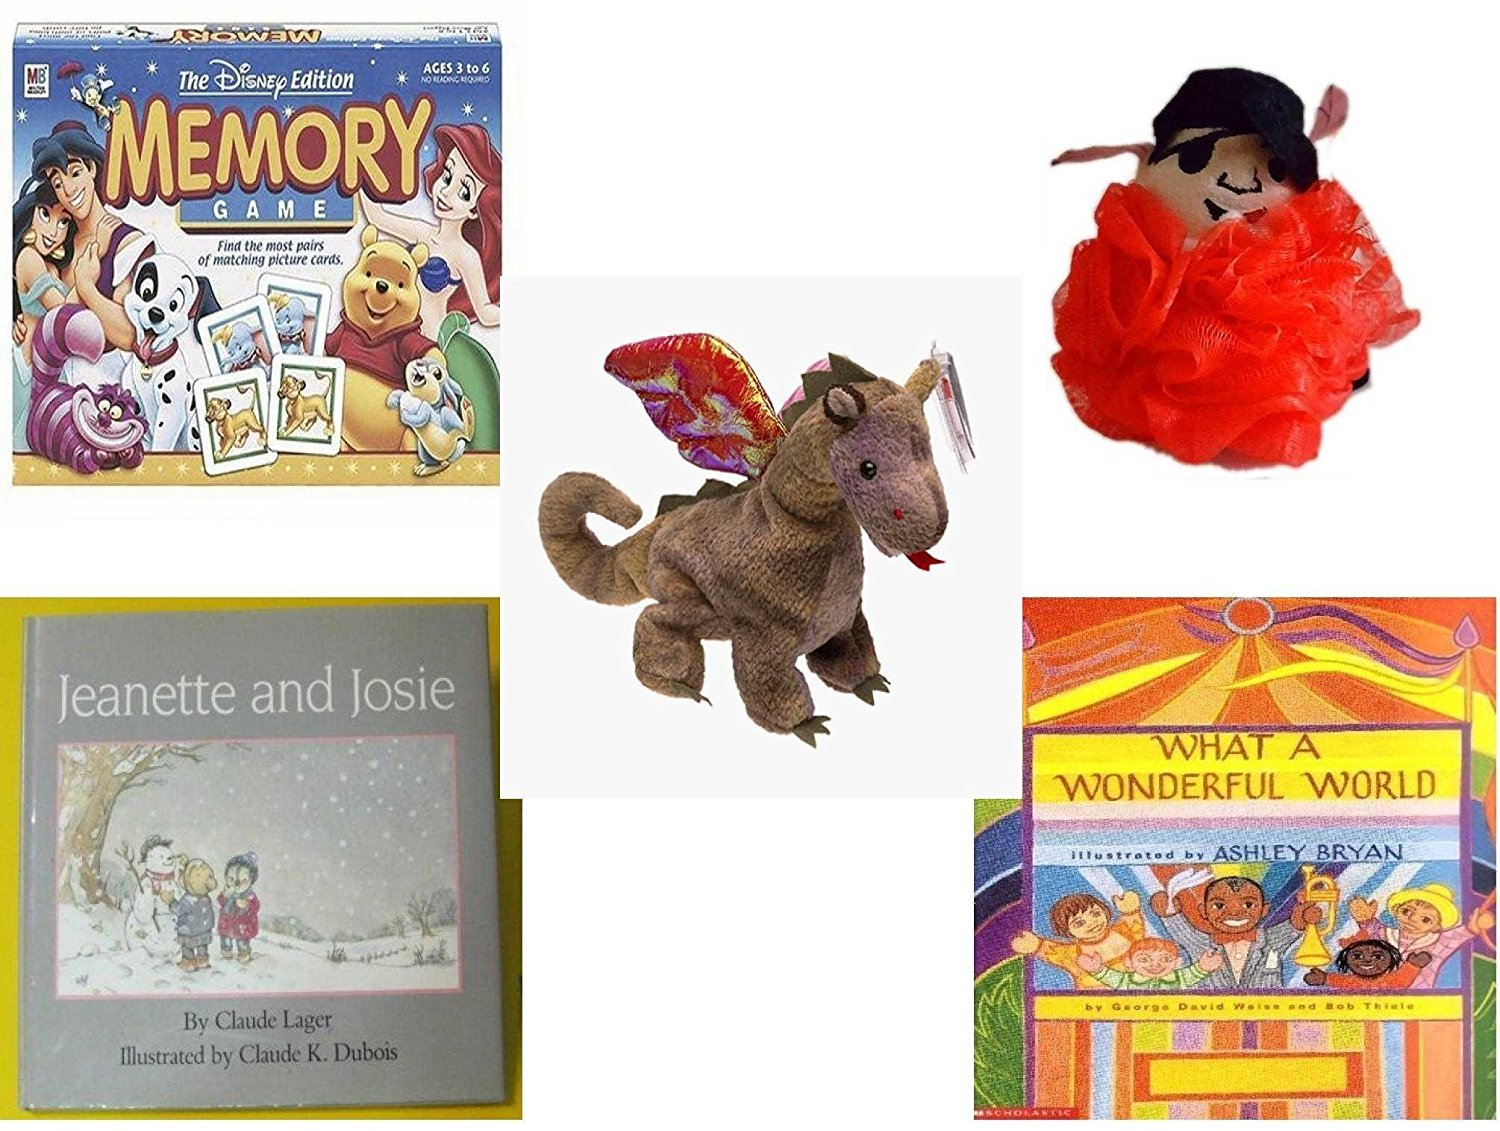 Children's Gift Bundle - Ages 3-5 [5 Piece] - The Disney Edition Memory Game - The Wiggles Captain Feathersword Net Bath Sponge - Ty Beanie Baby - Scorch the Dragon - Jeanette and Josie Hardcover Bo